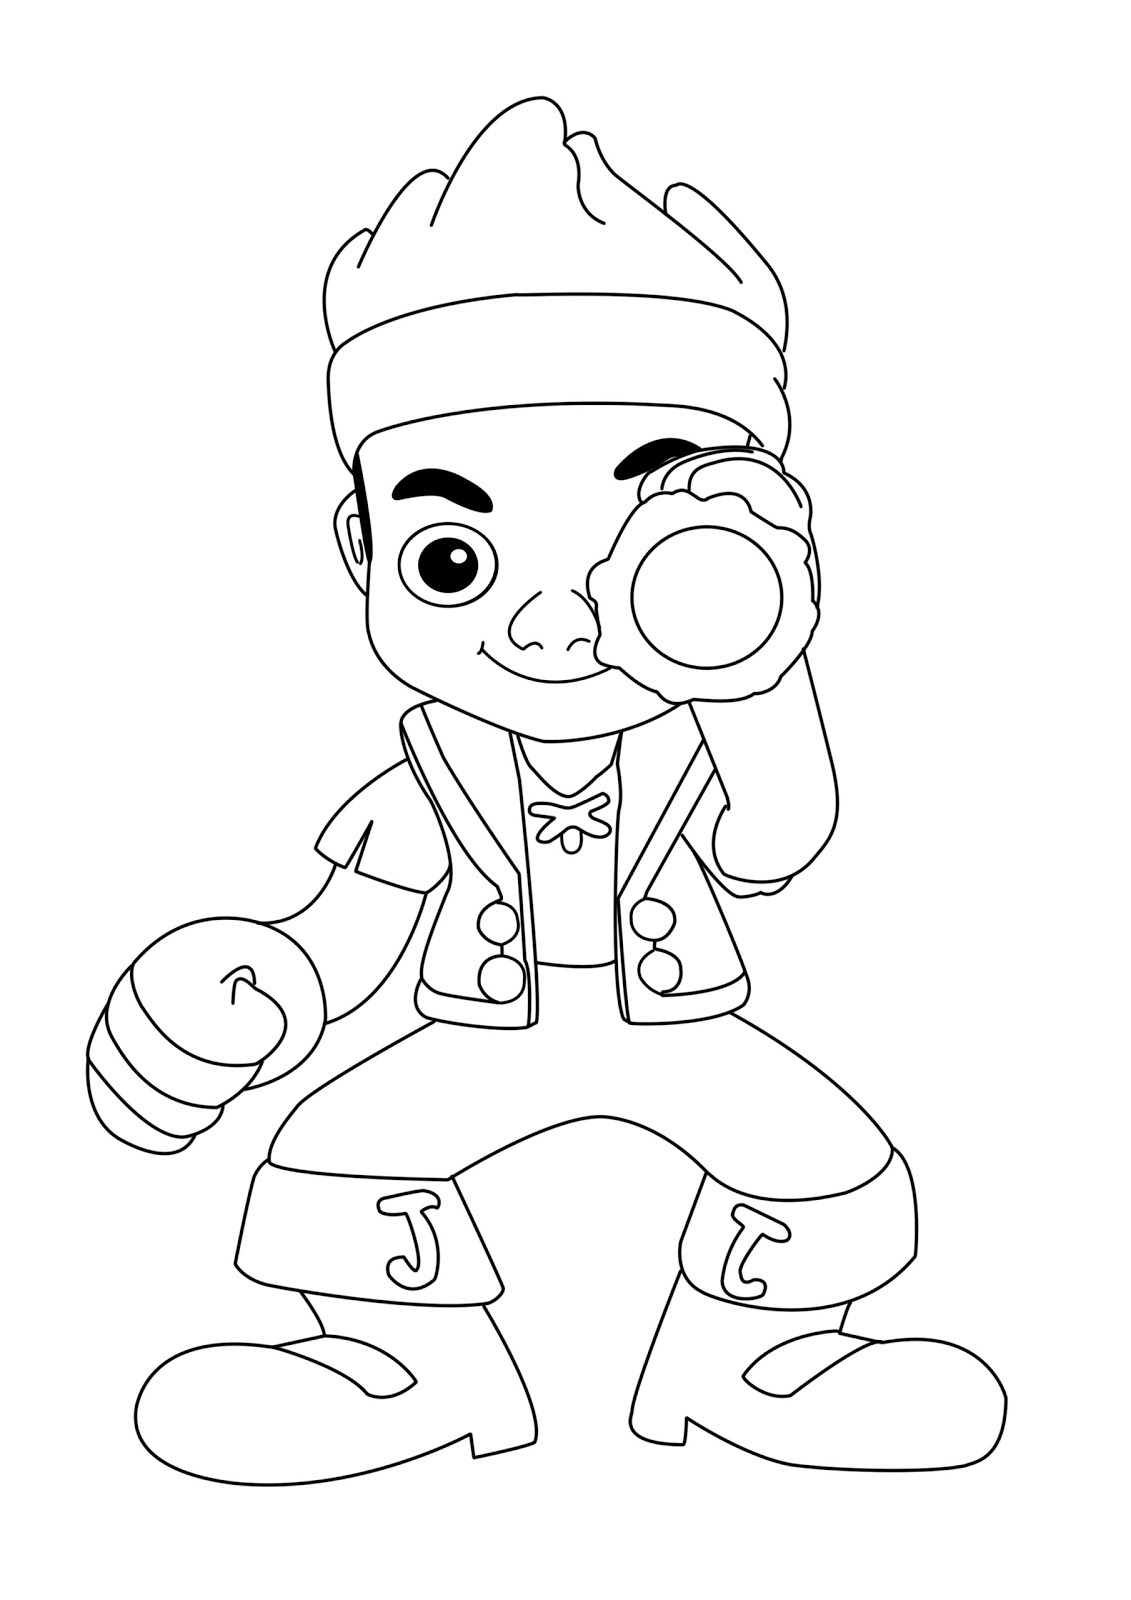 Jake And The Never land Pirates Coloring Pages | Team colors